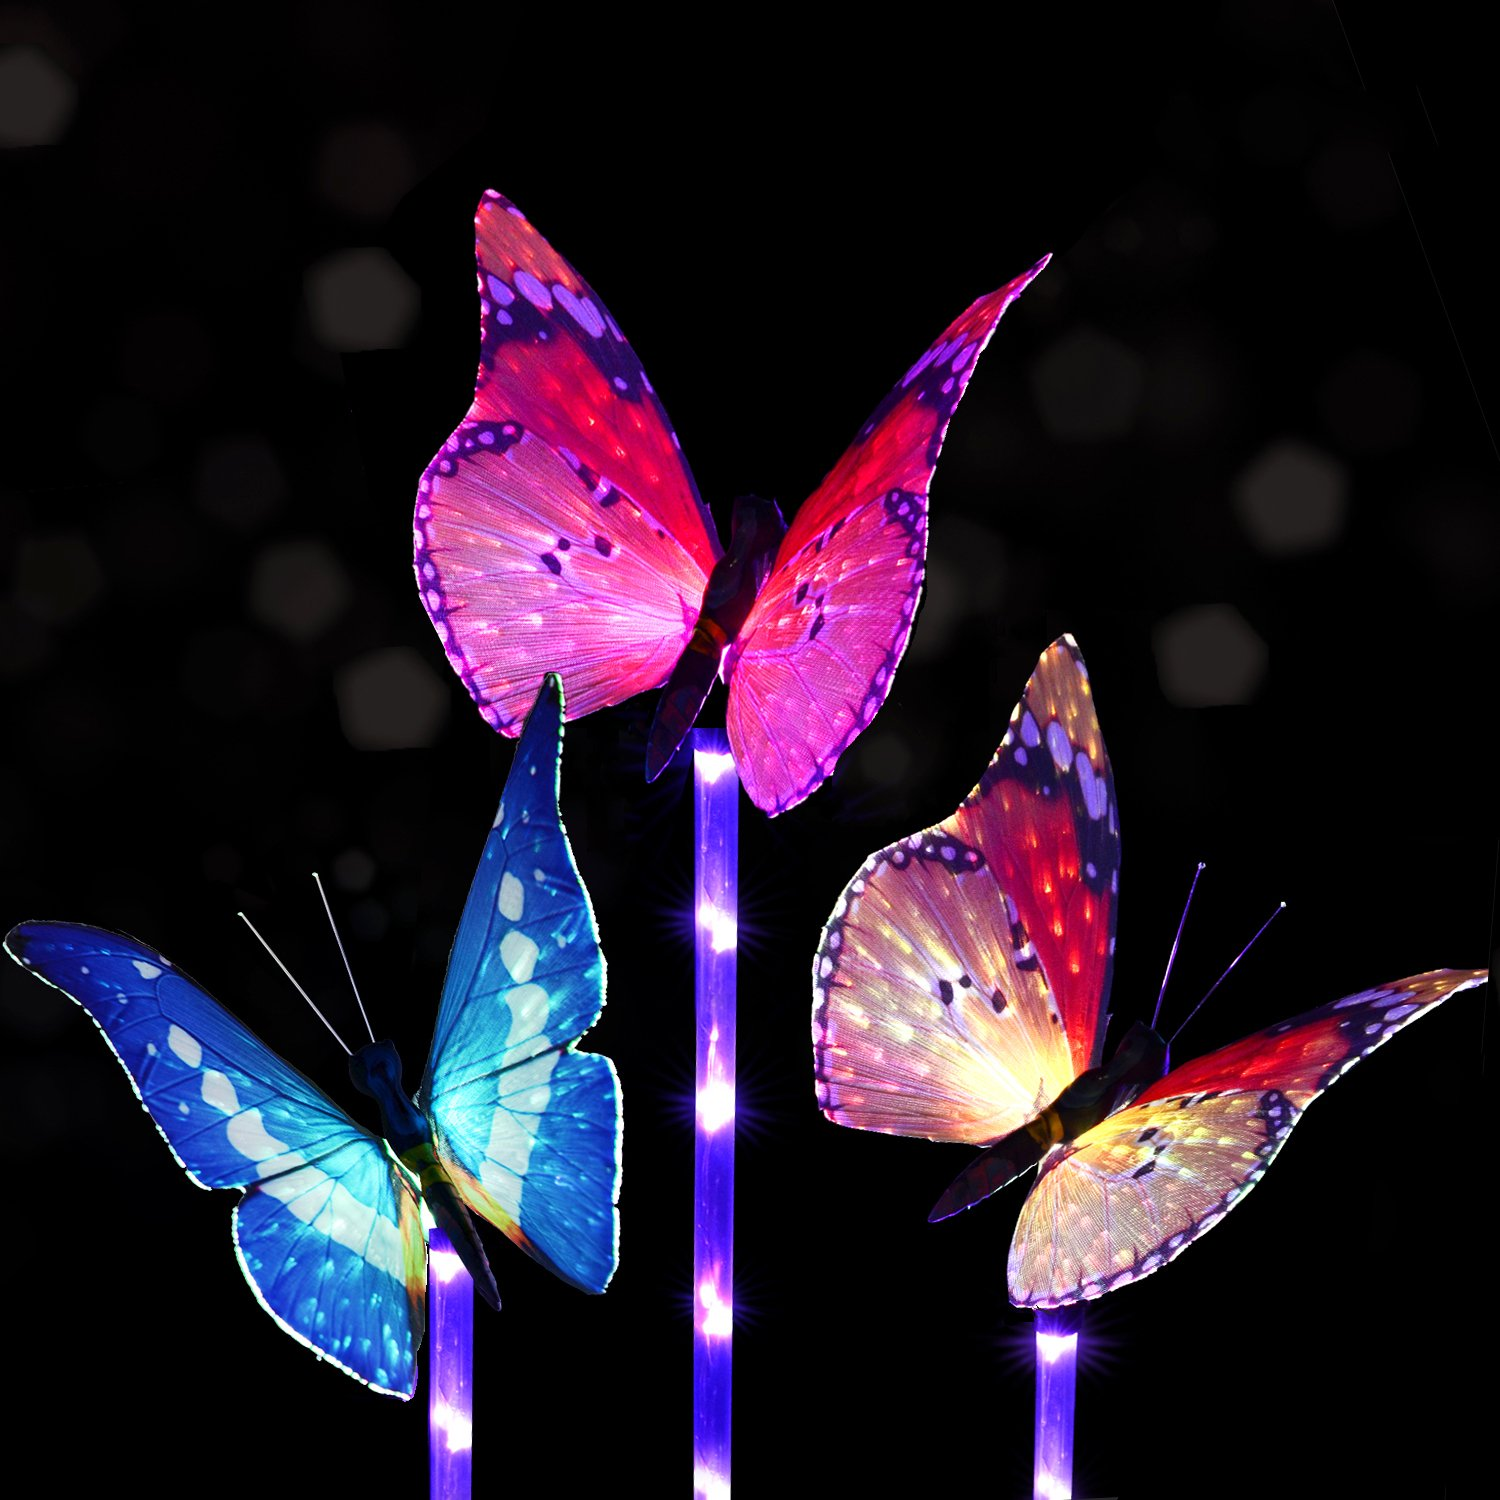 Solarmart Outdoor Garden Solar Lights - 3 Pack Fiber Optic Butterfly Solar Powered Lights, Color Changing LED Solar Stake Lights, with a Purple LED Light Stake for Garden, Patio, Backyard